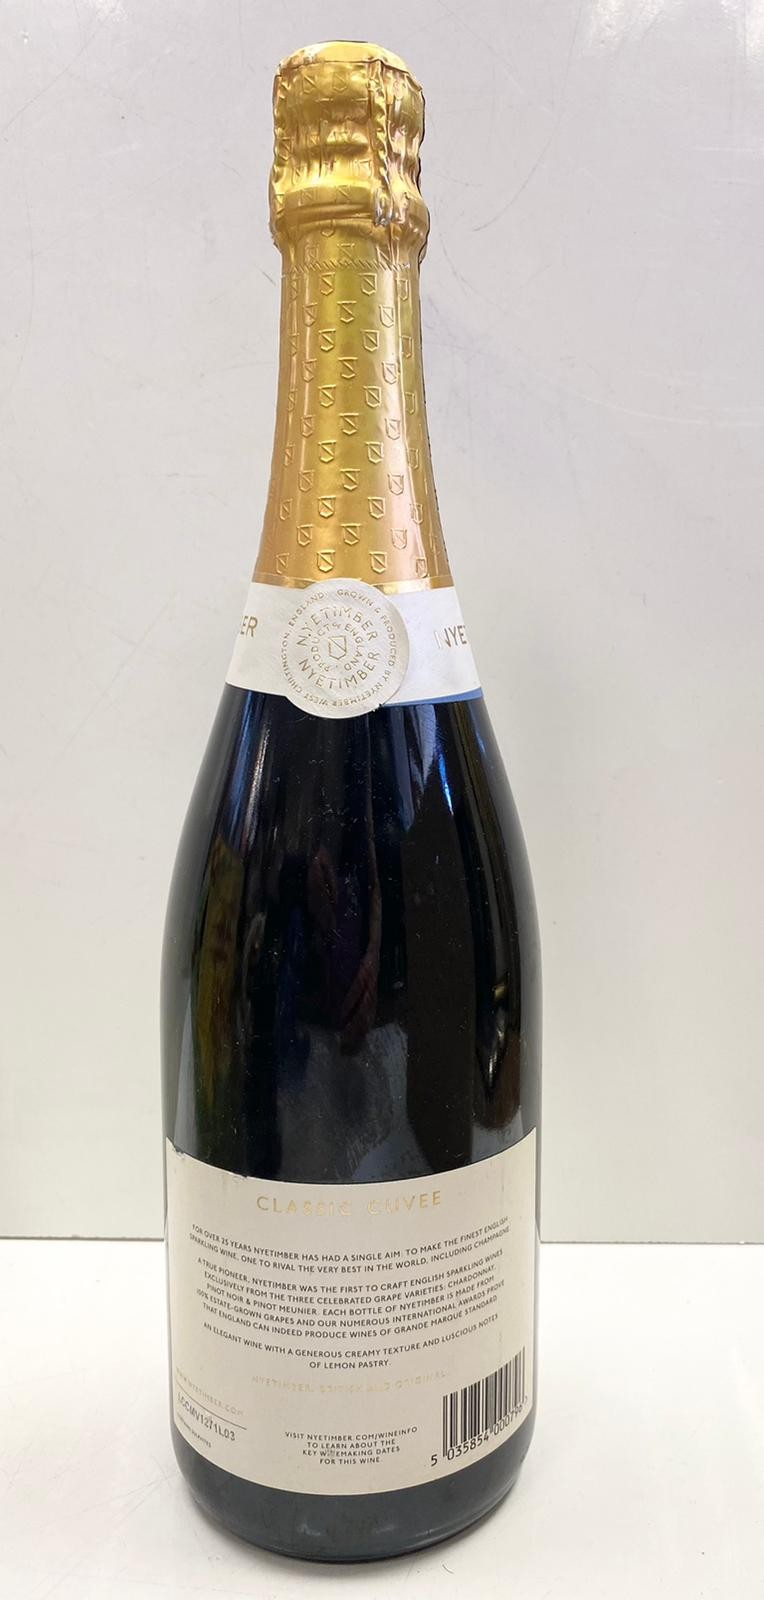 Nyetimber Classic Cuvee NV. Made in UK. 75cl. 12% Vol. - Image 2 of 2